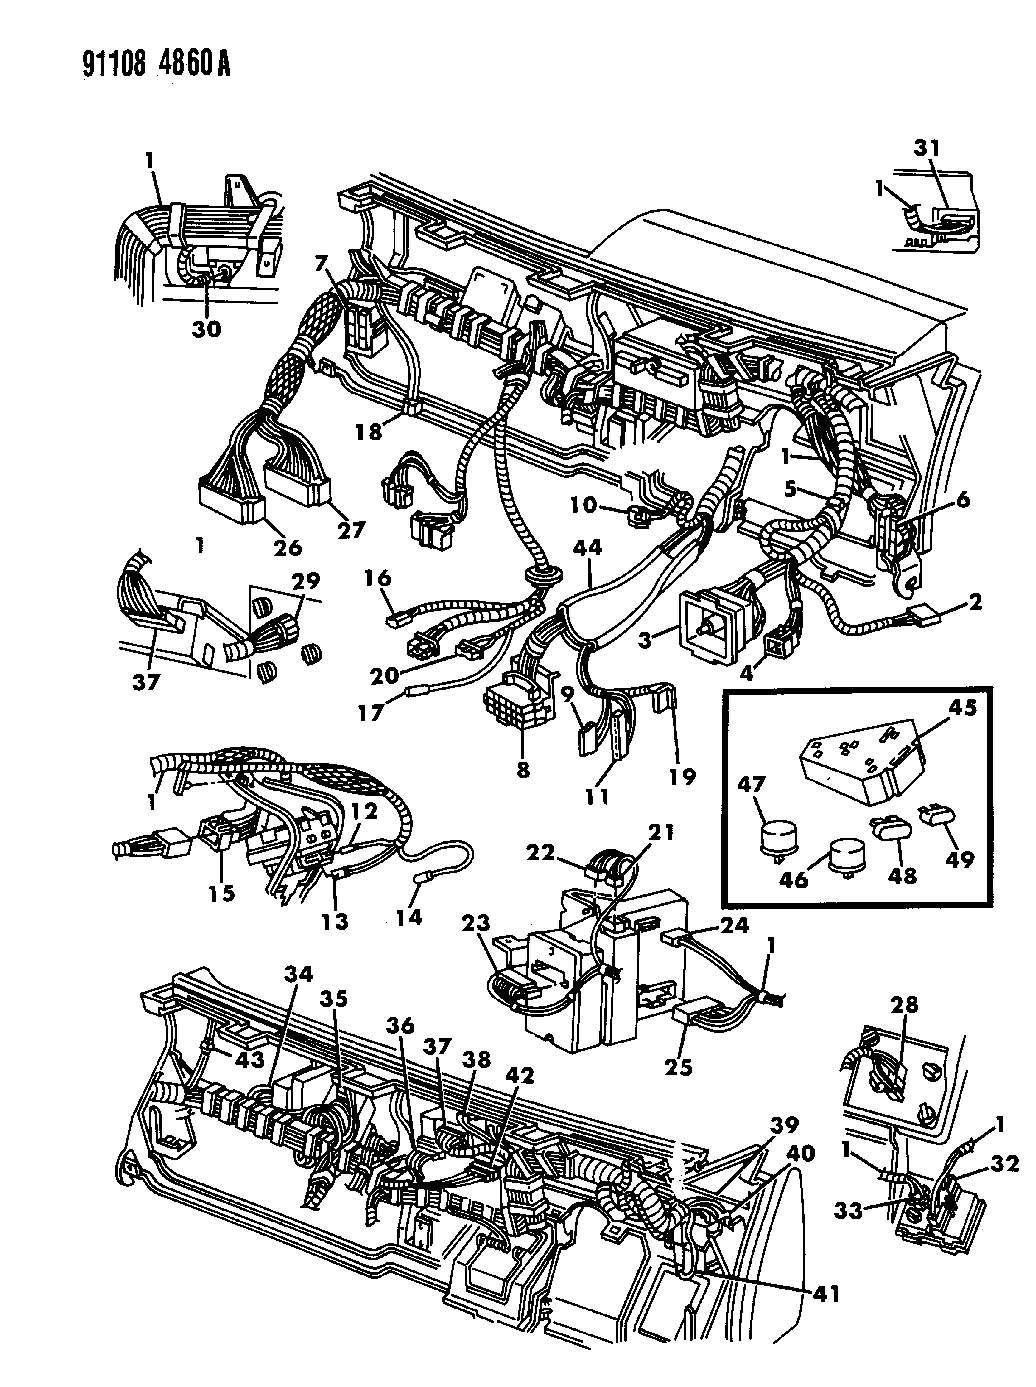 1992 dodge shadow wiring diagram  dodge  auto wiring diagram